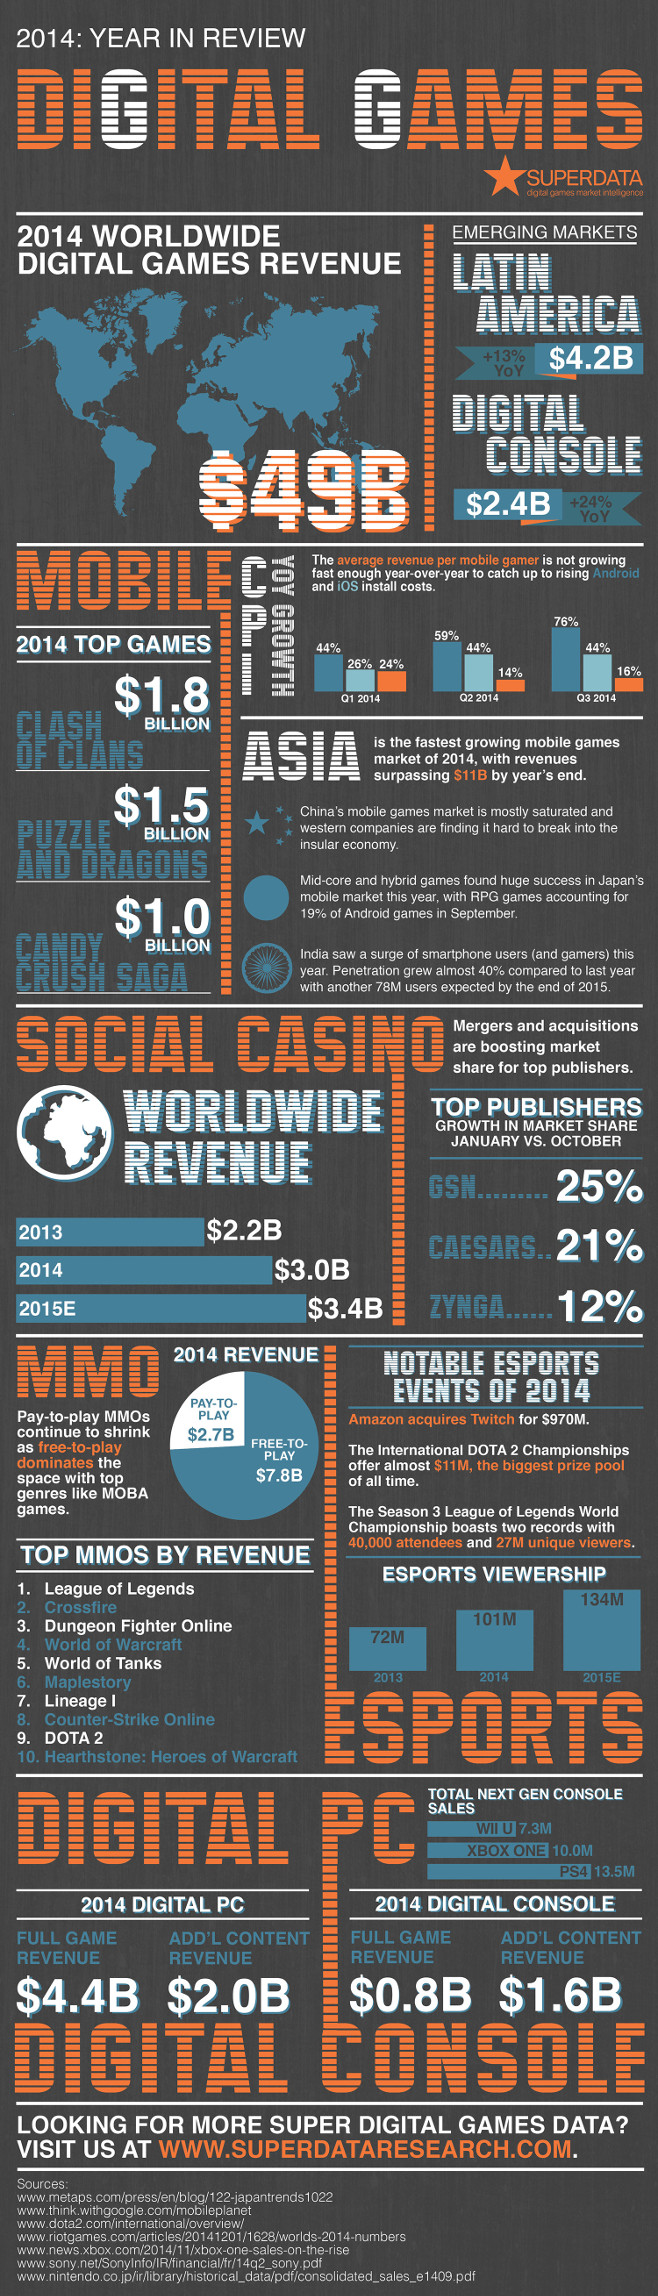 2014 Infographic Shows Rise of Digital Game Sales, Most